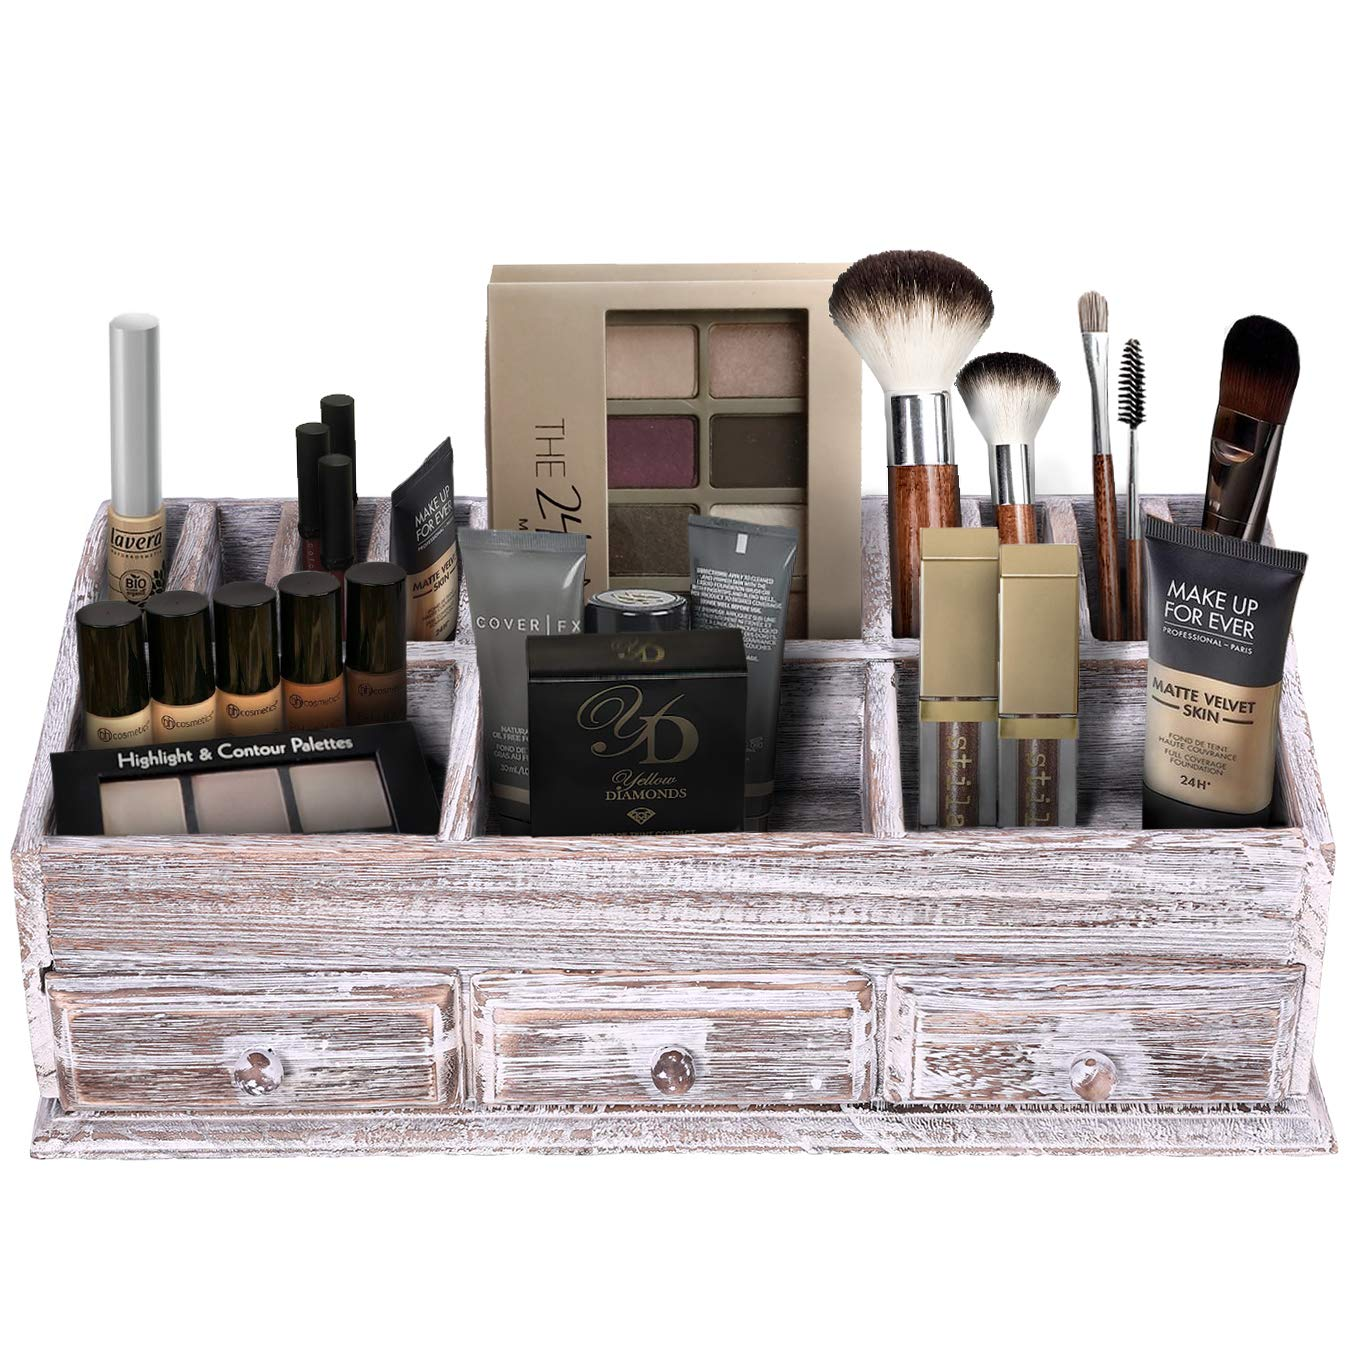 Admirable Rustic Wooden Desk Organizer For Home Or Office Makeup Organizer And Storage For Bathroom Vanity Organizer With 3 Drawers And 6 Compartments Interior Design Ideas Skatsoteloinfo